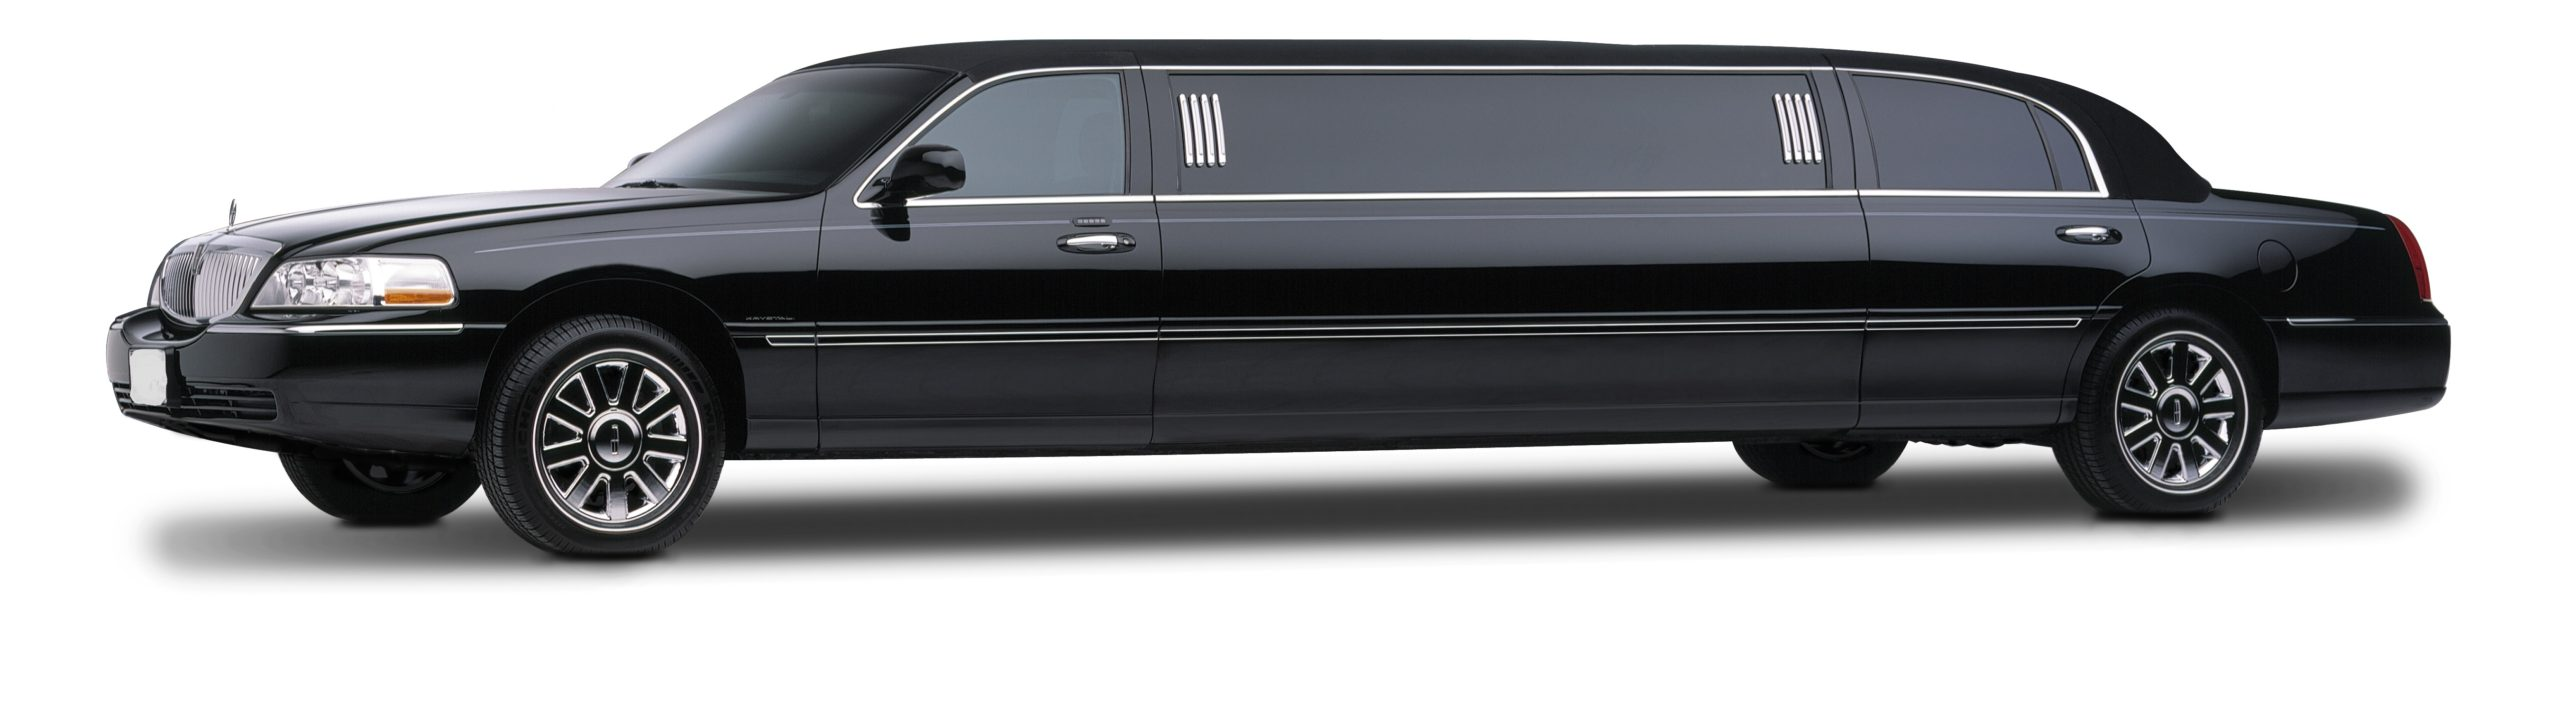 Black Car Limo Service New York